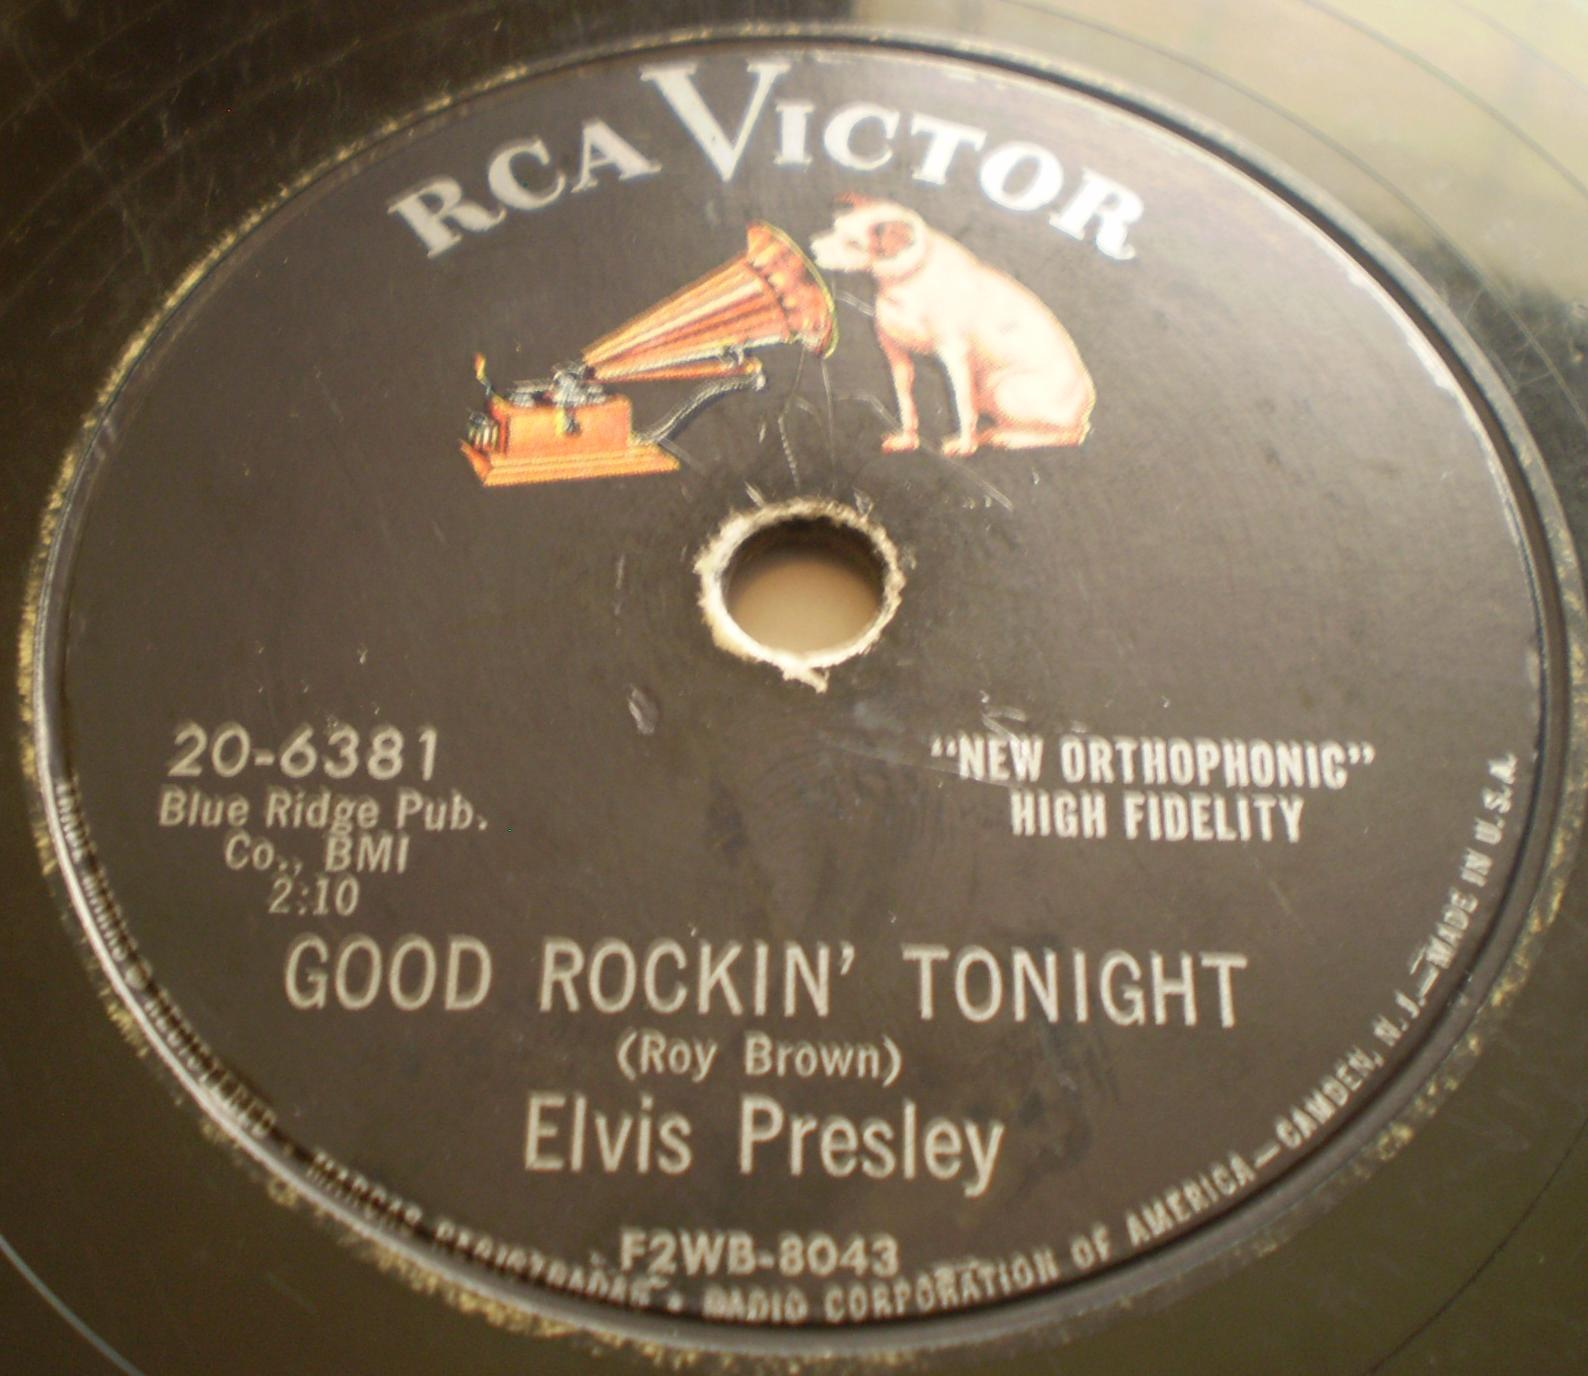 Good Rockin' Tonight / I Don't Care If The Sun Don't Shine 20-6381a4bb2b